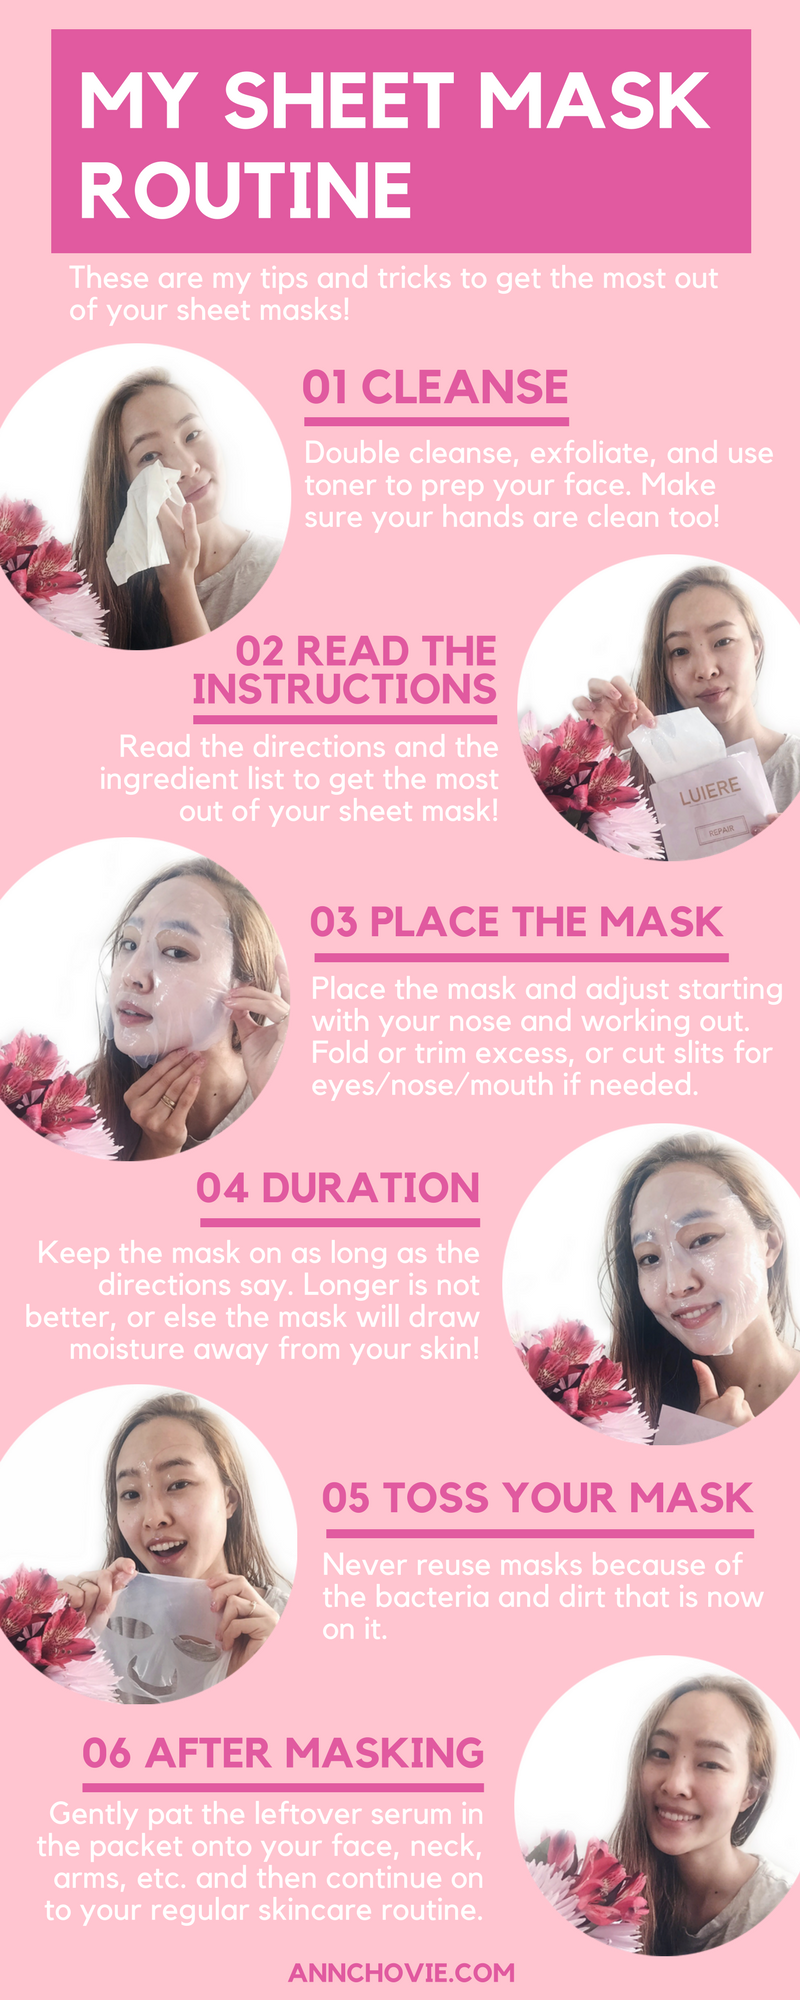 Tips And Tricks To Get The Most Out Of Your Sheet Masks